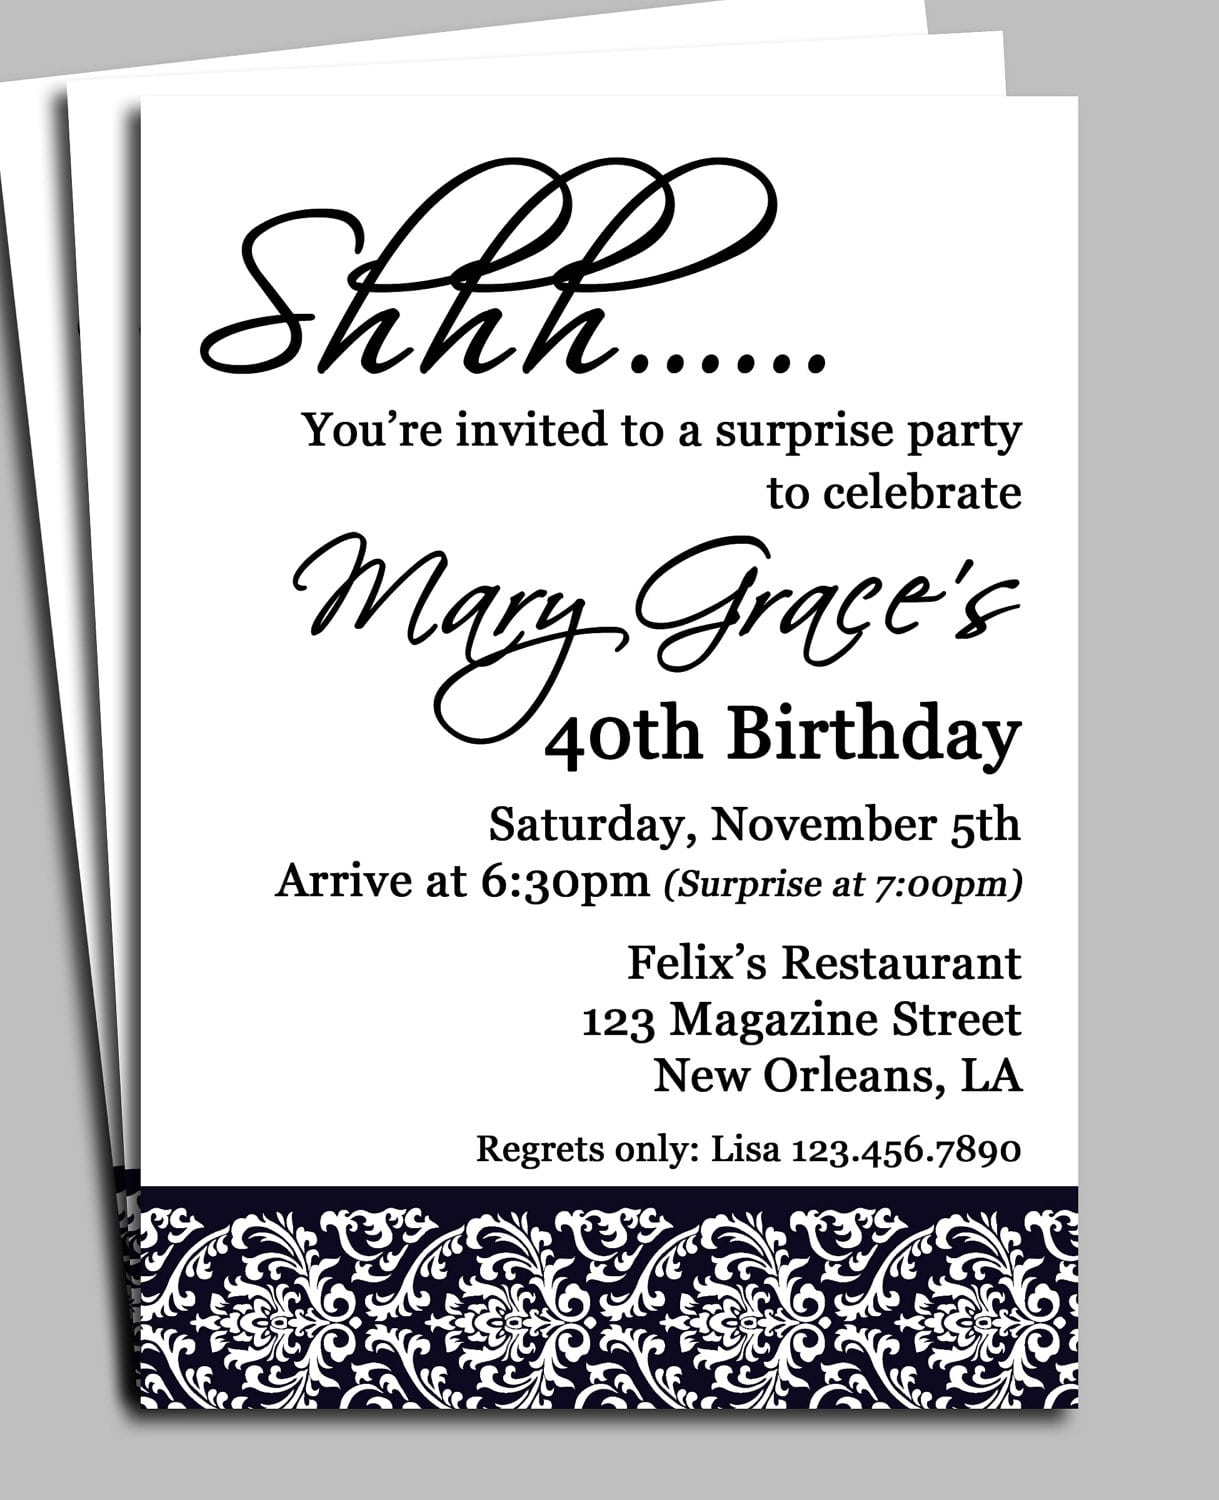 Surprise Party Invitation Ideas - Mickey Mouse Invitations Templates